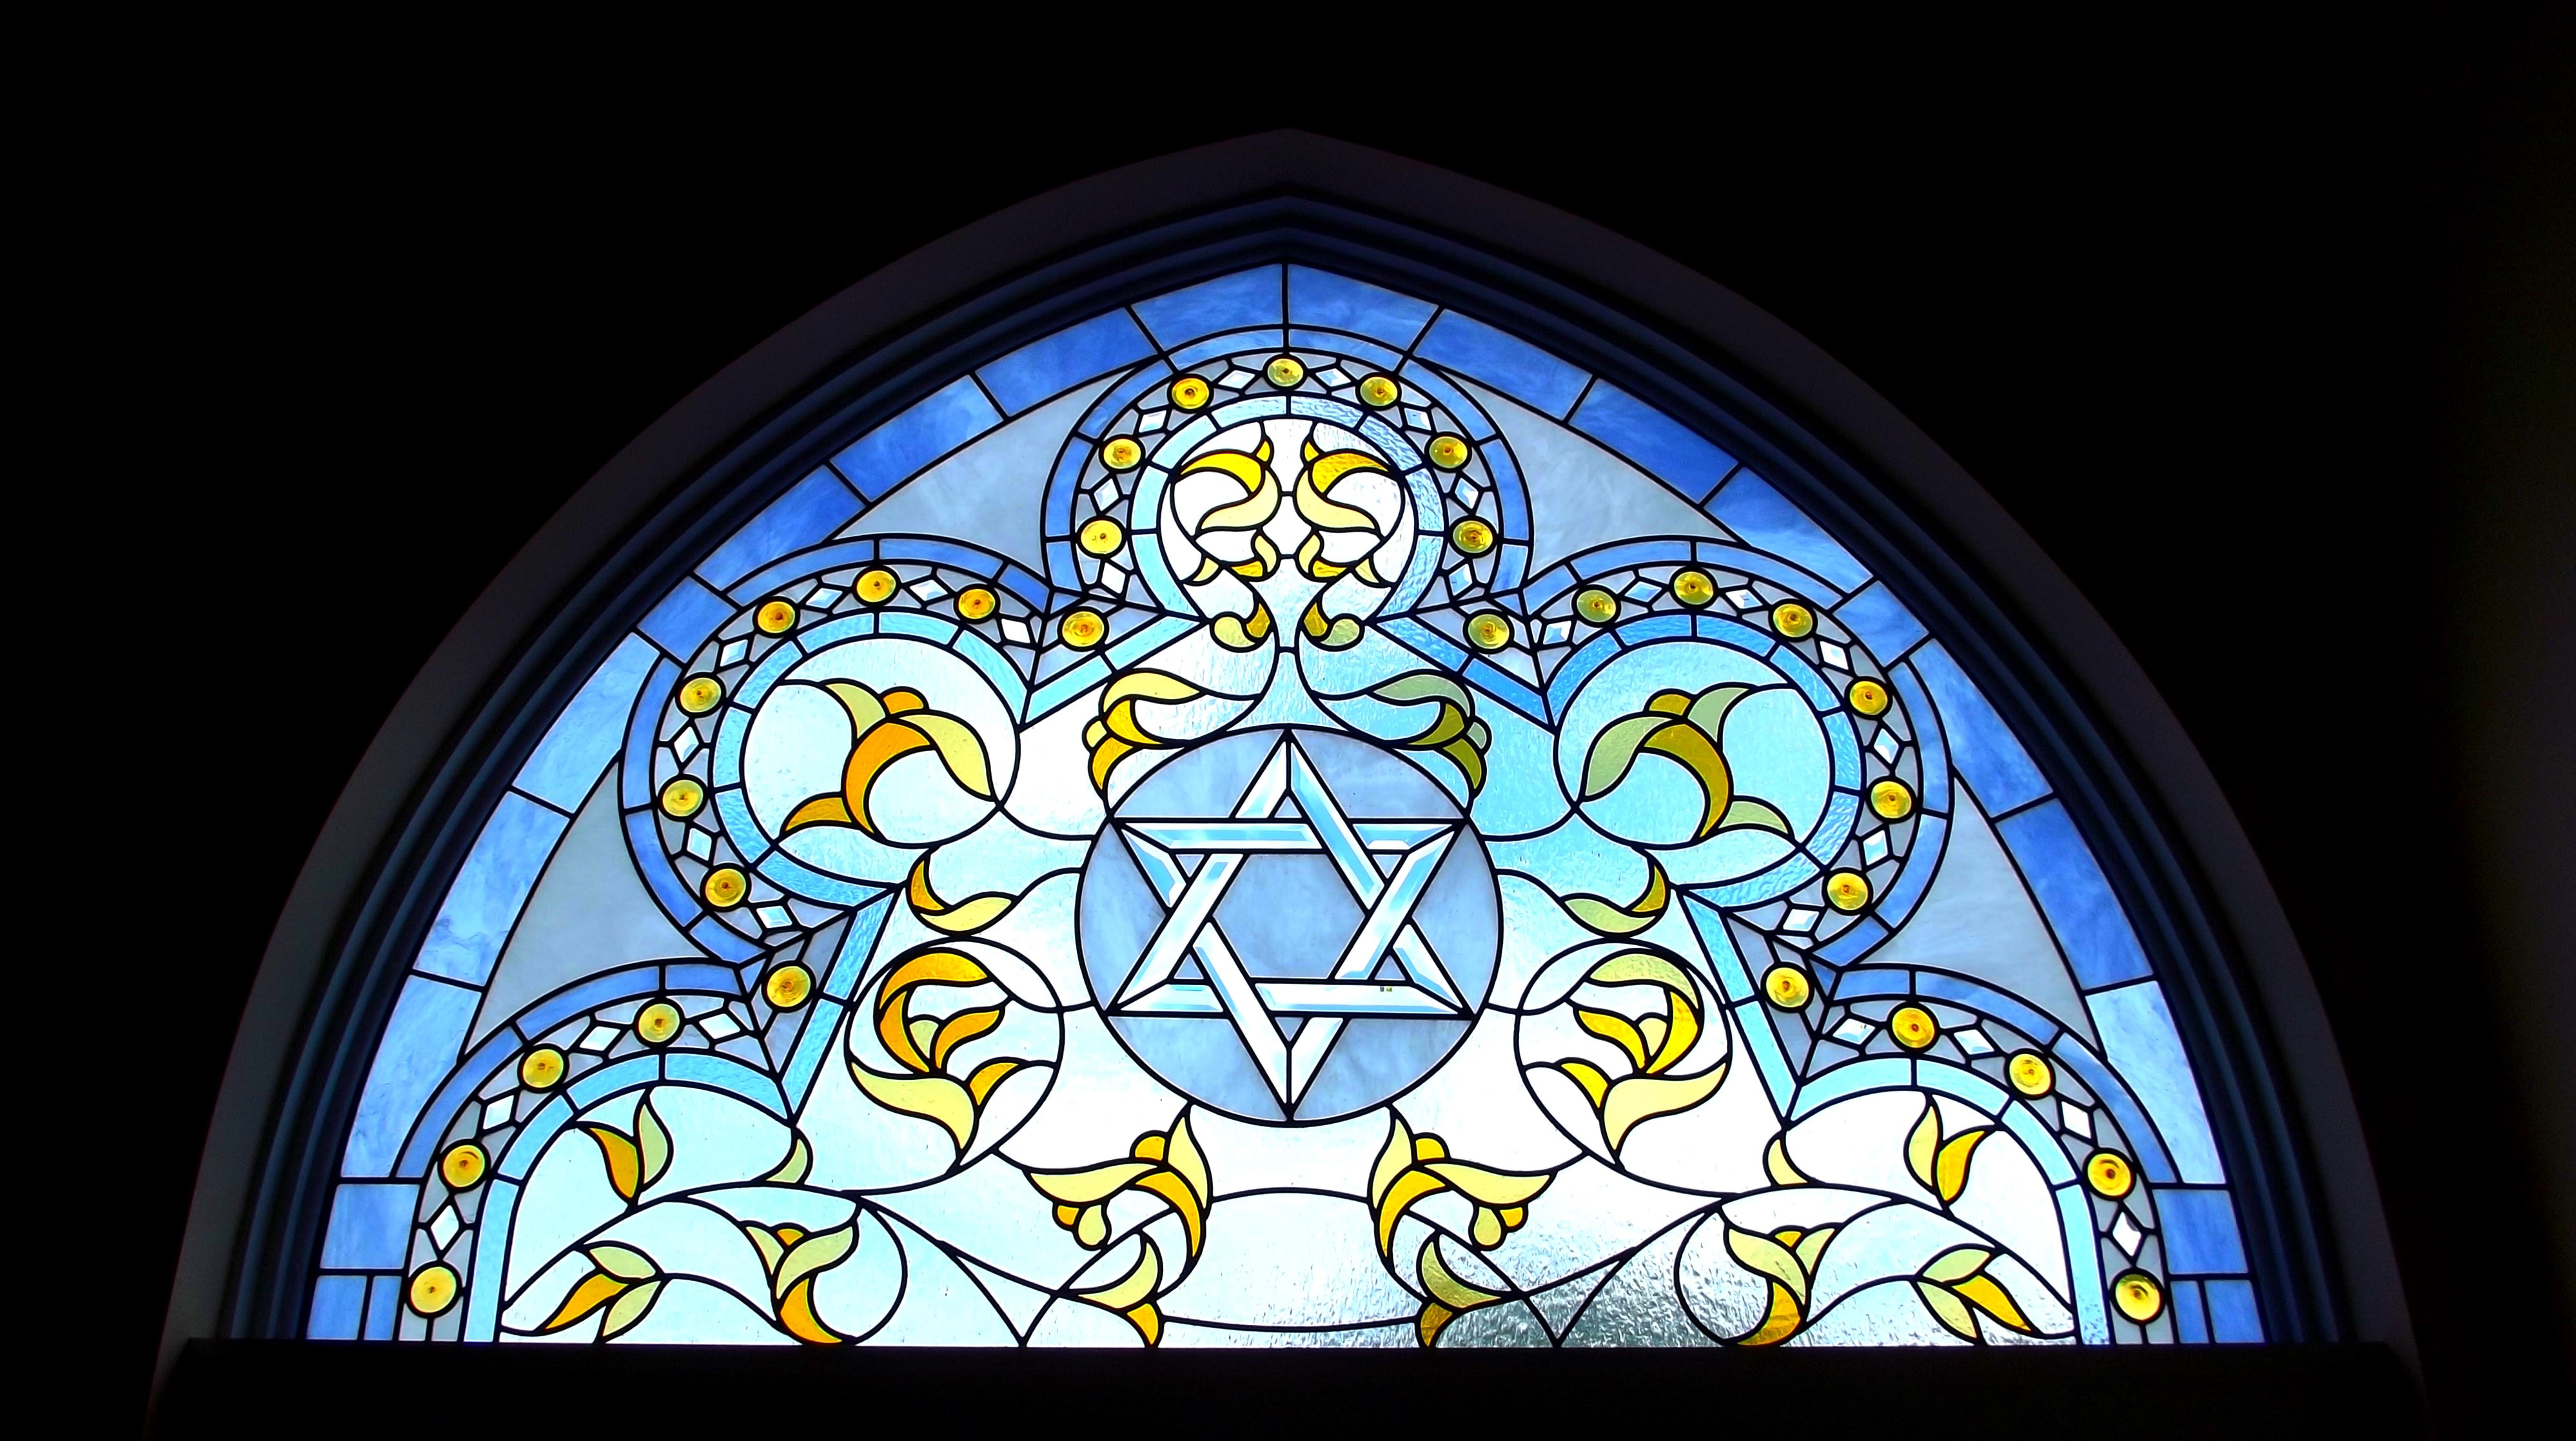 Jewish Faith Star of David stained glass arched window